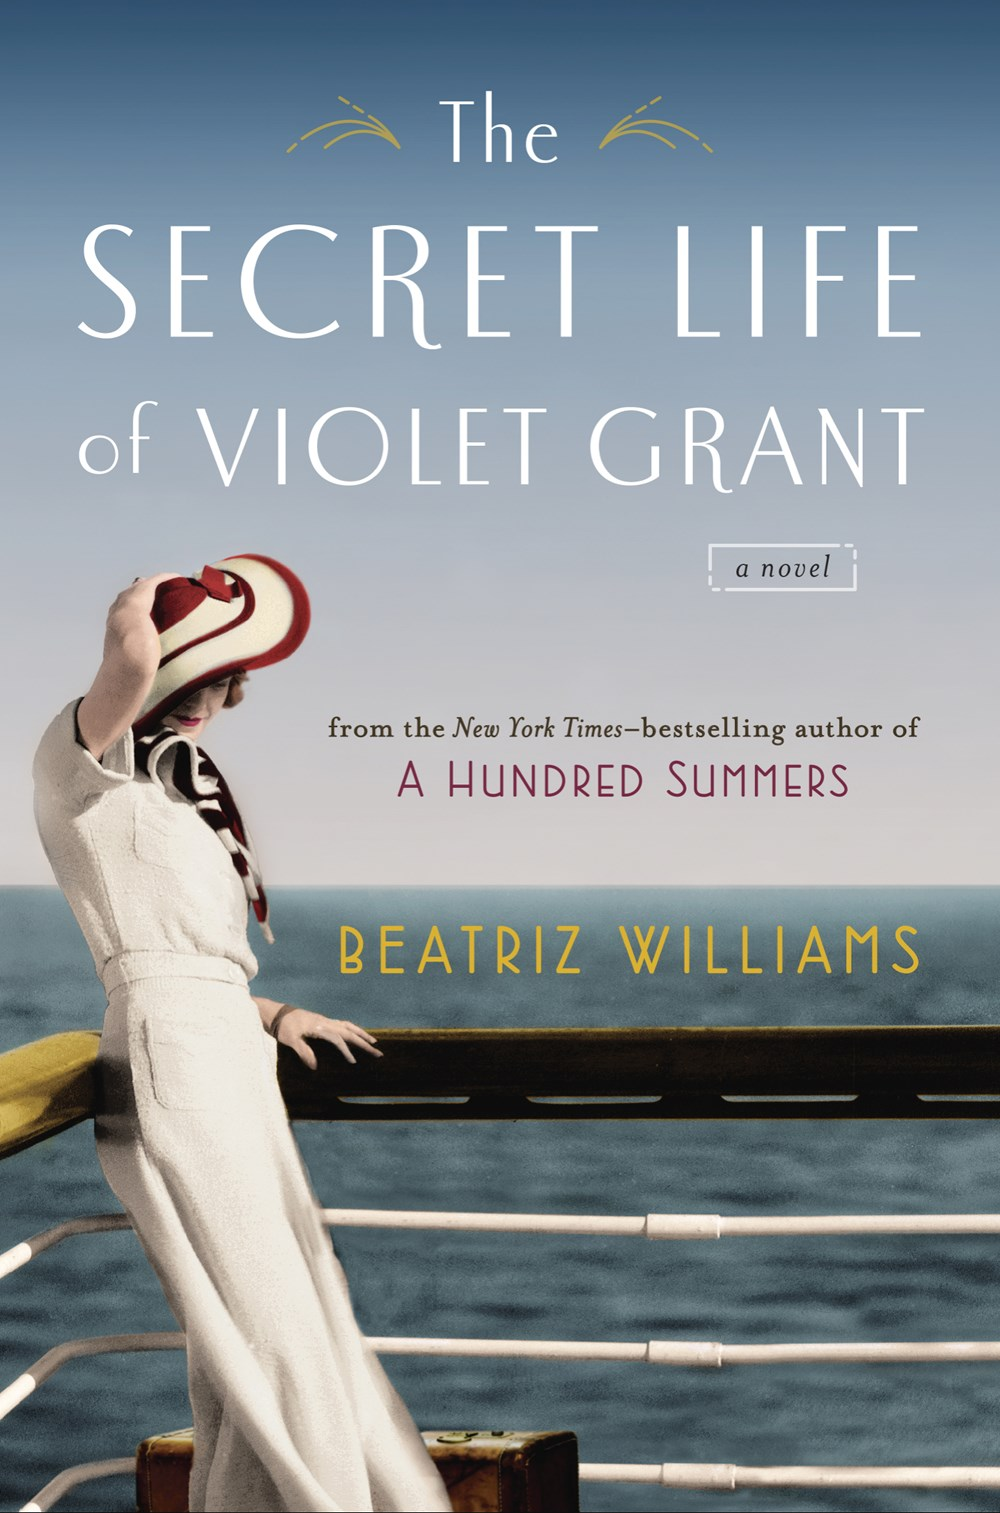 Review: The Secret Life of Violet Grant by Beatriz Williams